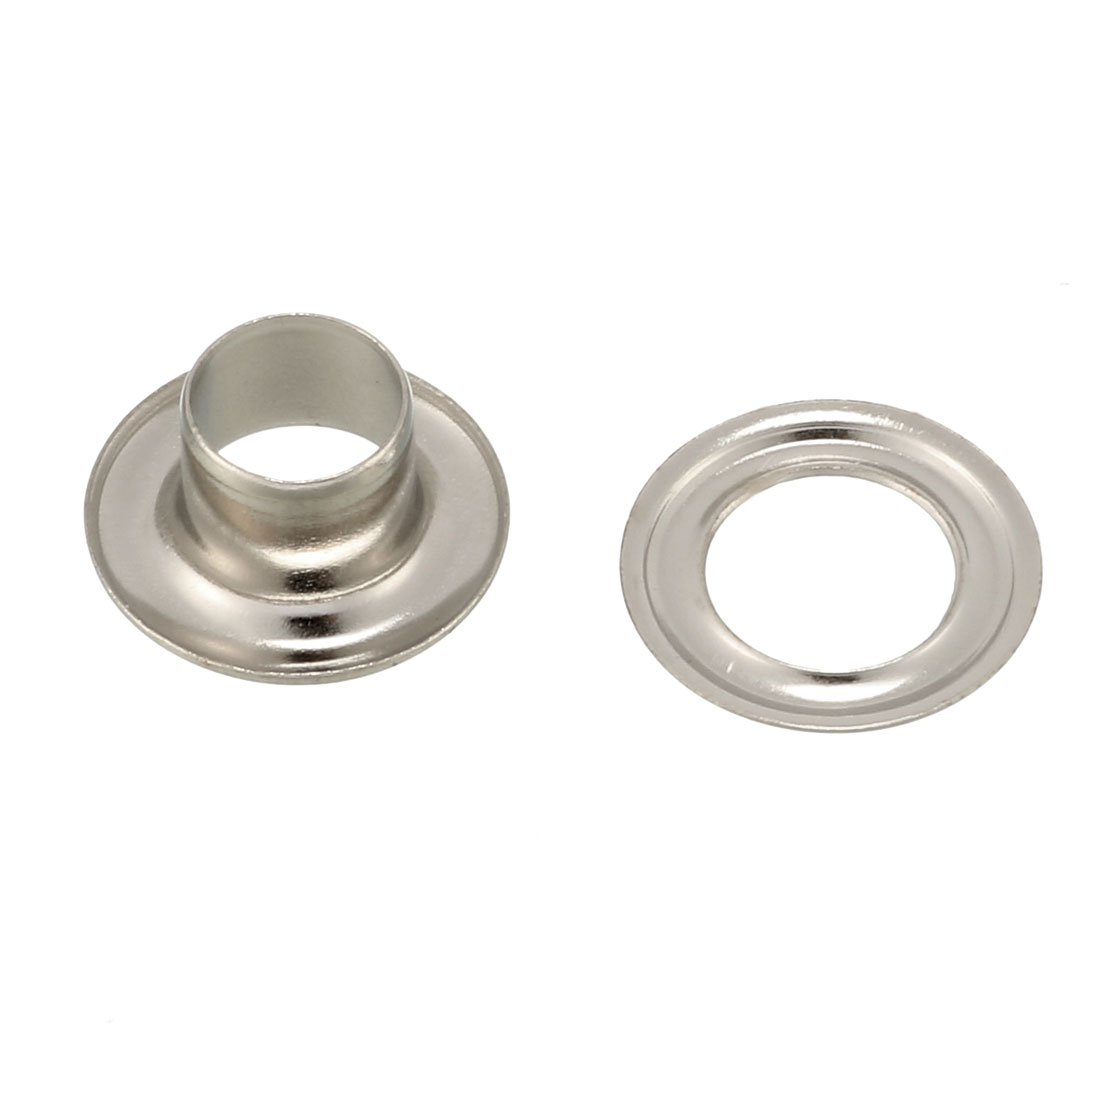 8mm x 80mm Threaded Rod Brass Double Headed Bolt Fastener with Hex Nuts M7 TJ 2X